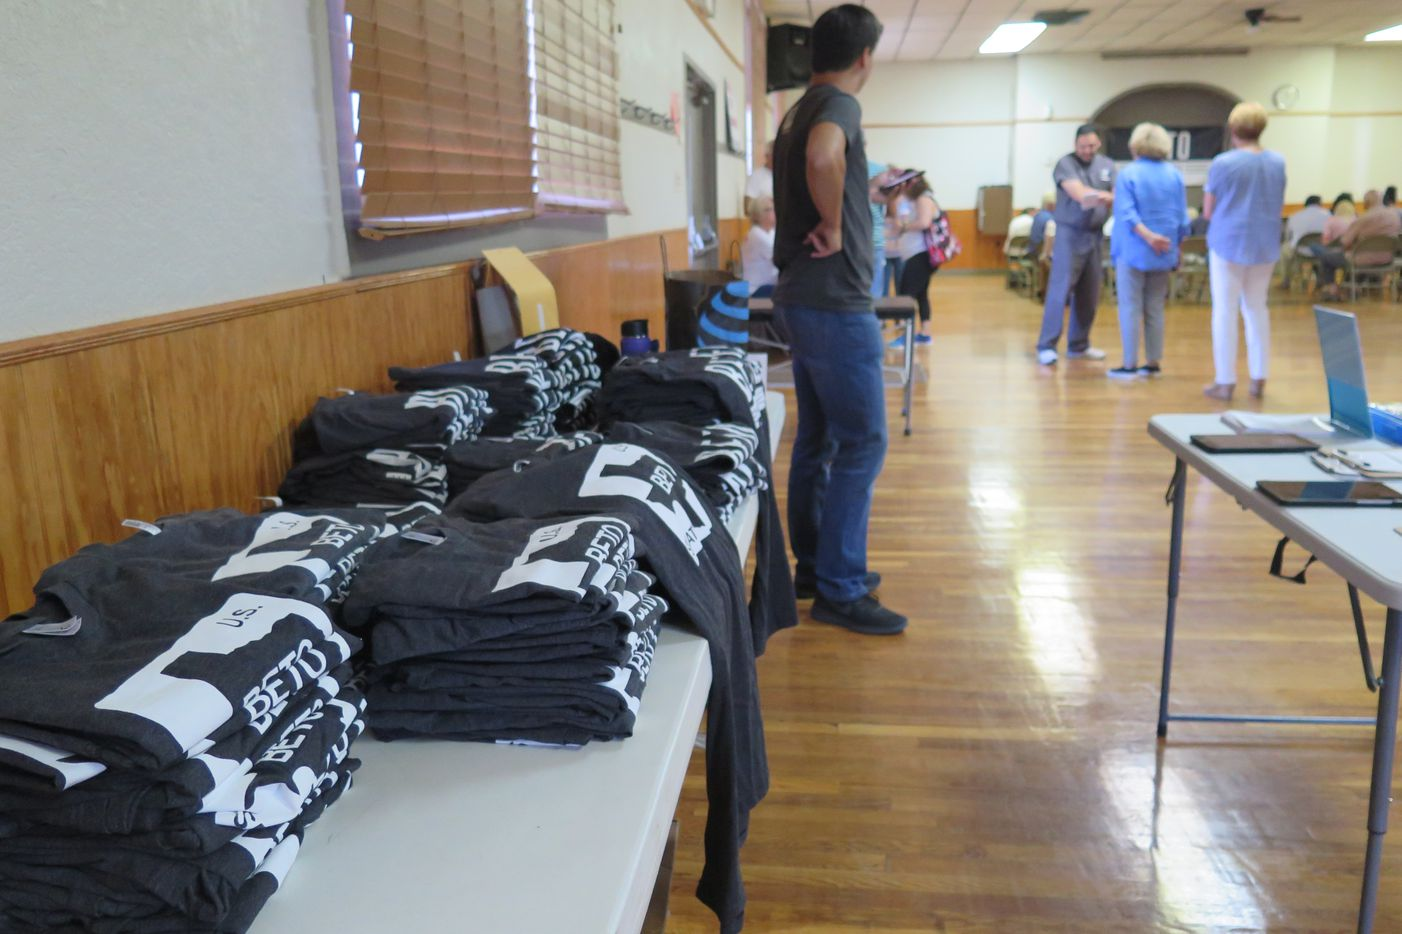 O'Rourke campaign workers brought more T-shirts to sell in Fort Stockton, Texas, at $25 each, than the number of voters who showed up to hear the congressman on July 30, 2018.